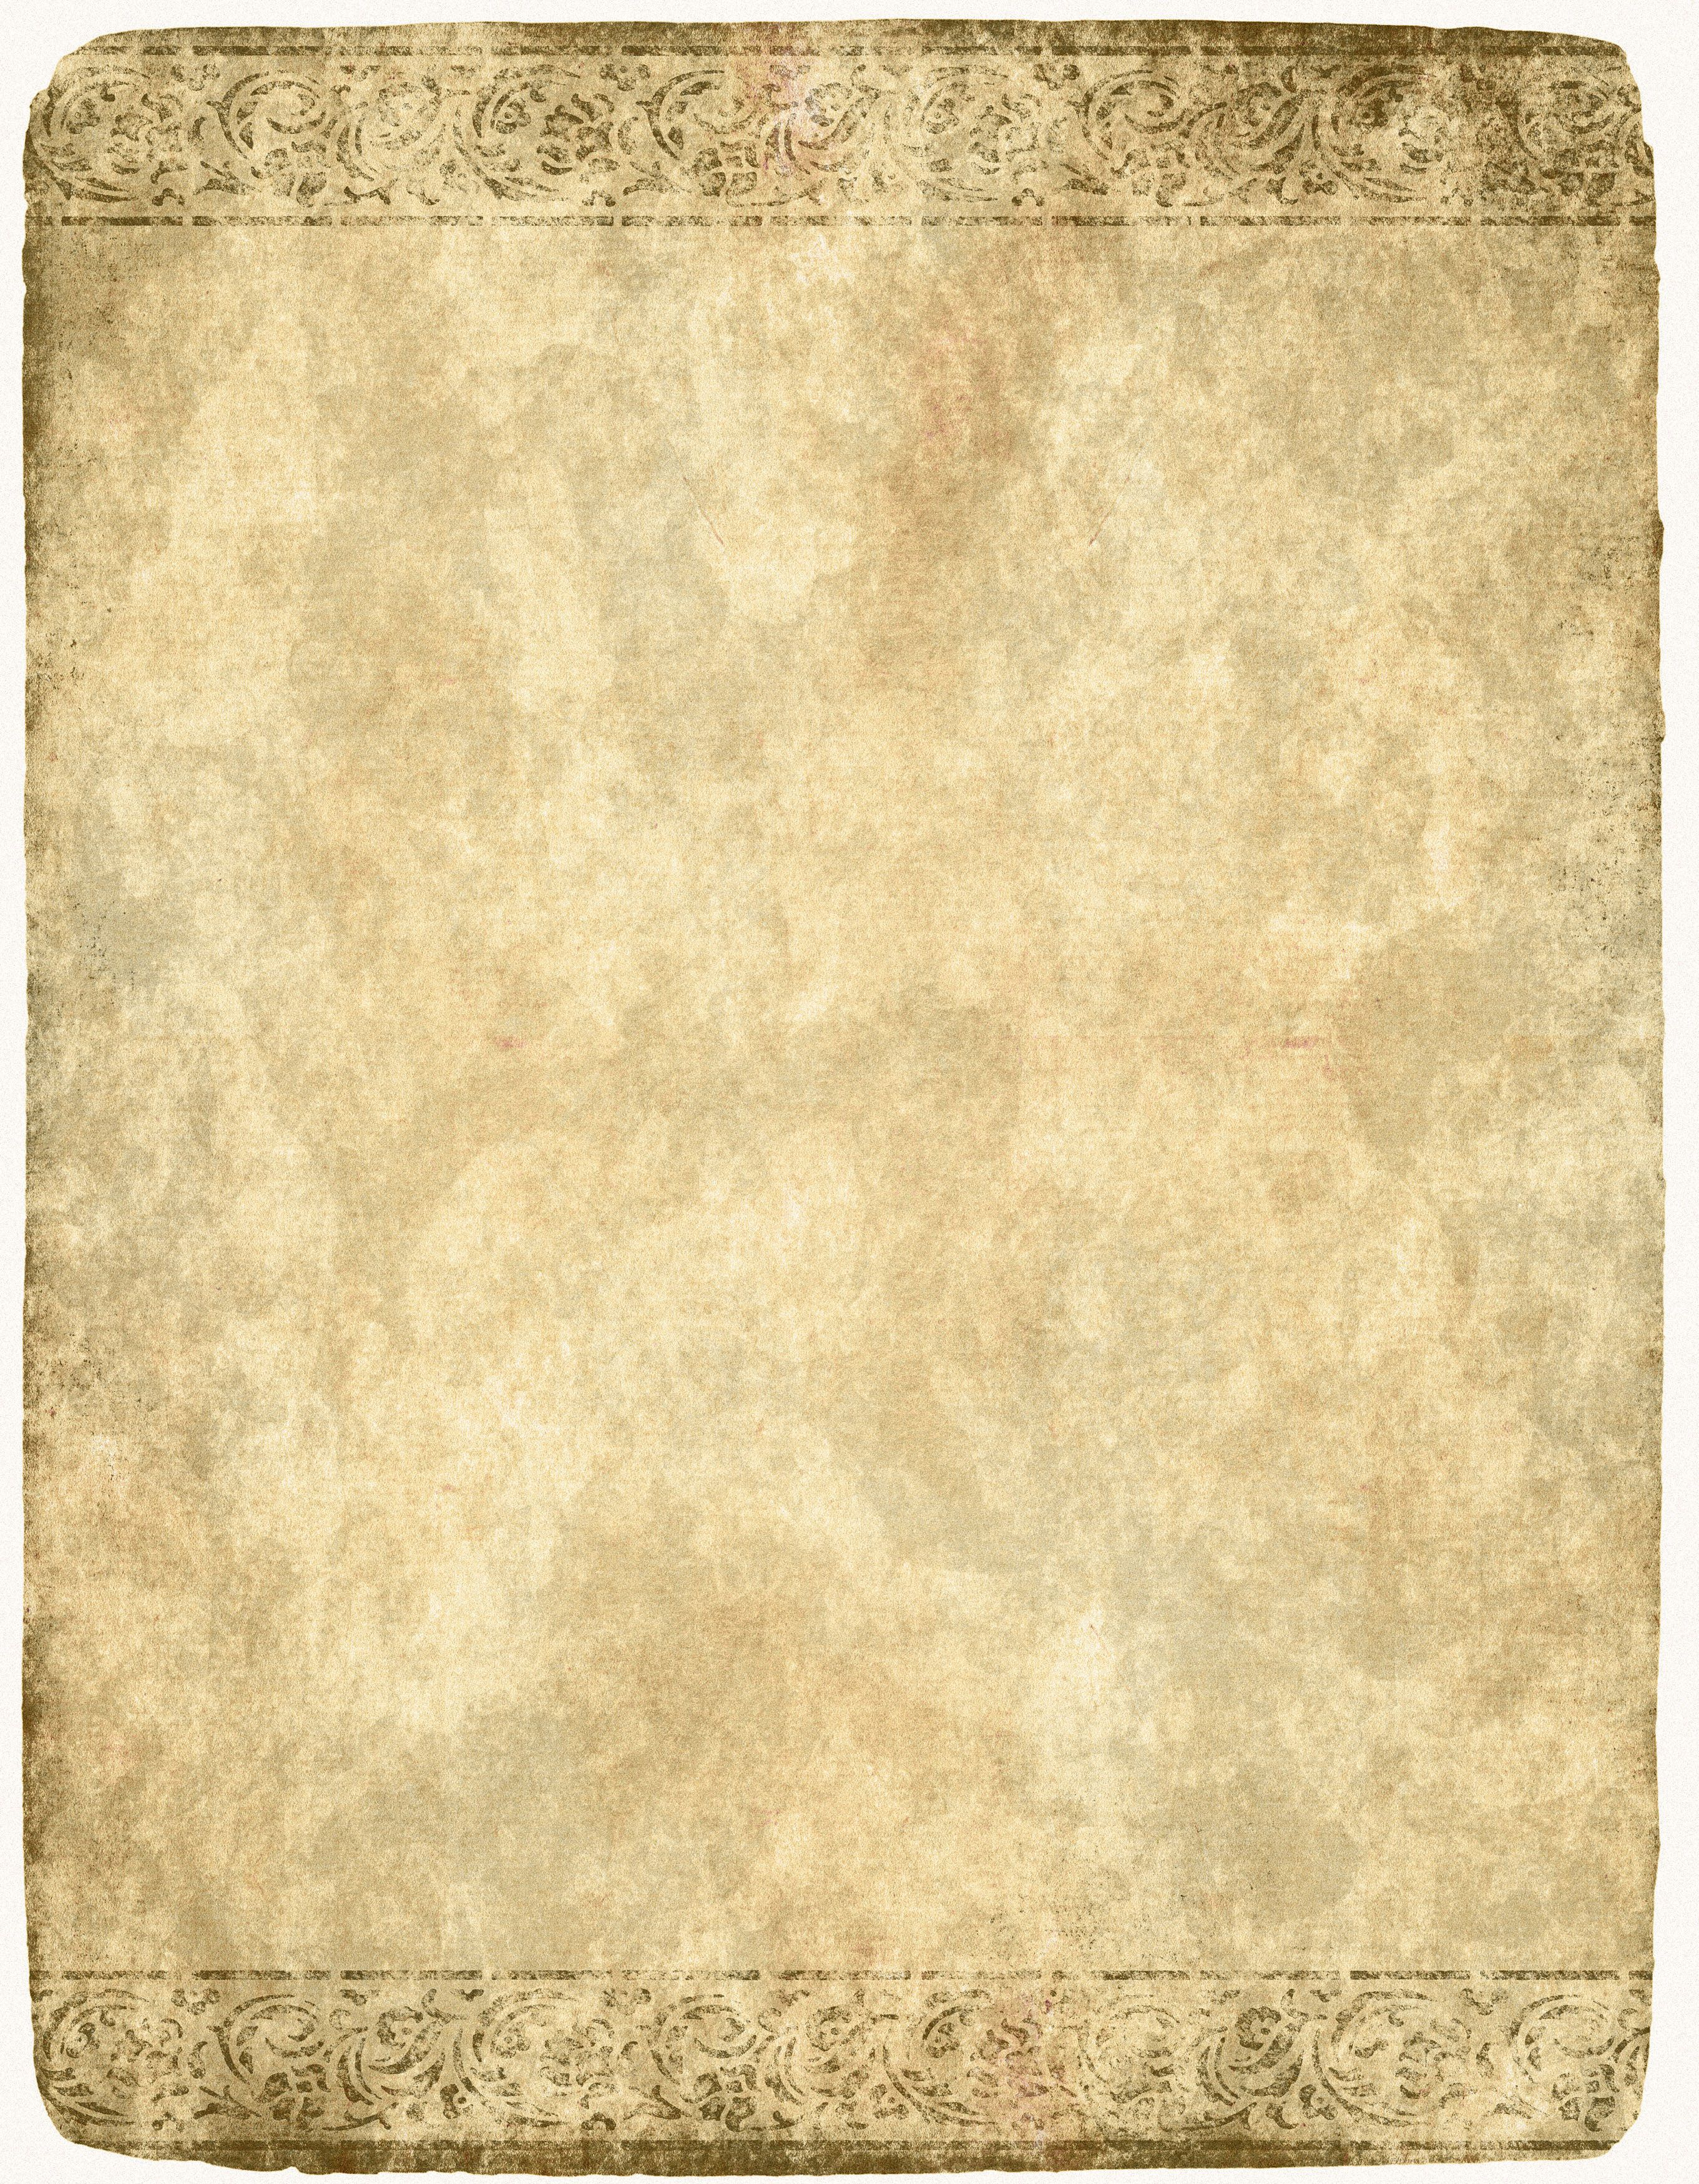 Old parchment or grunge paper texture http www for Paper wallpaper designs